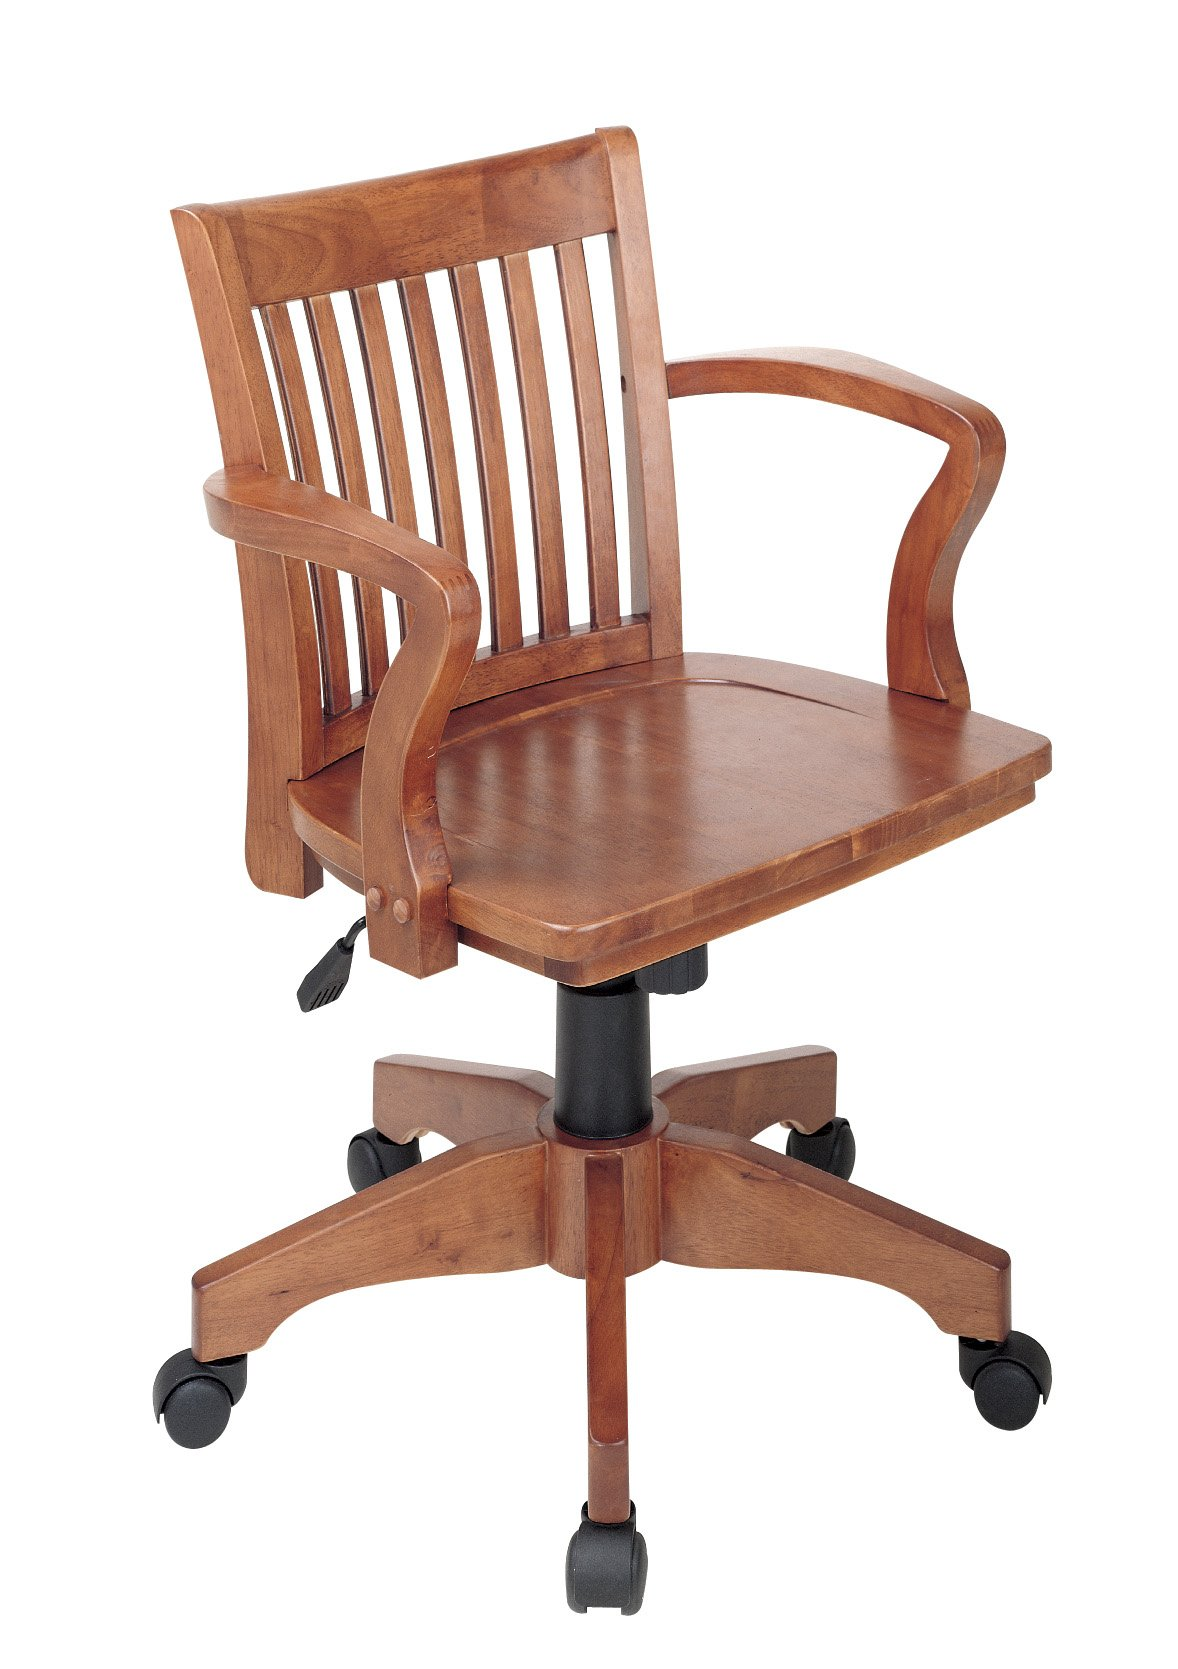 Office Star Deluxe Wood Bankers Desk Chair with Wood Seat, Fruit Wood